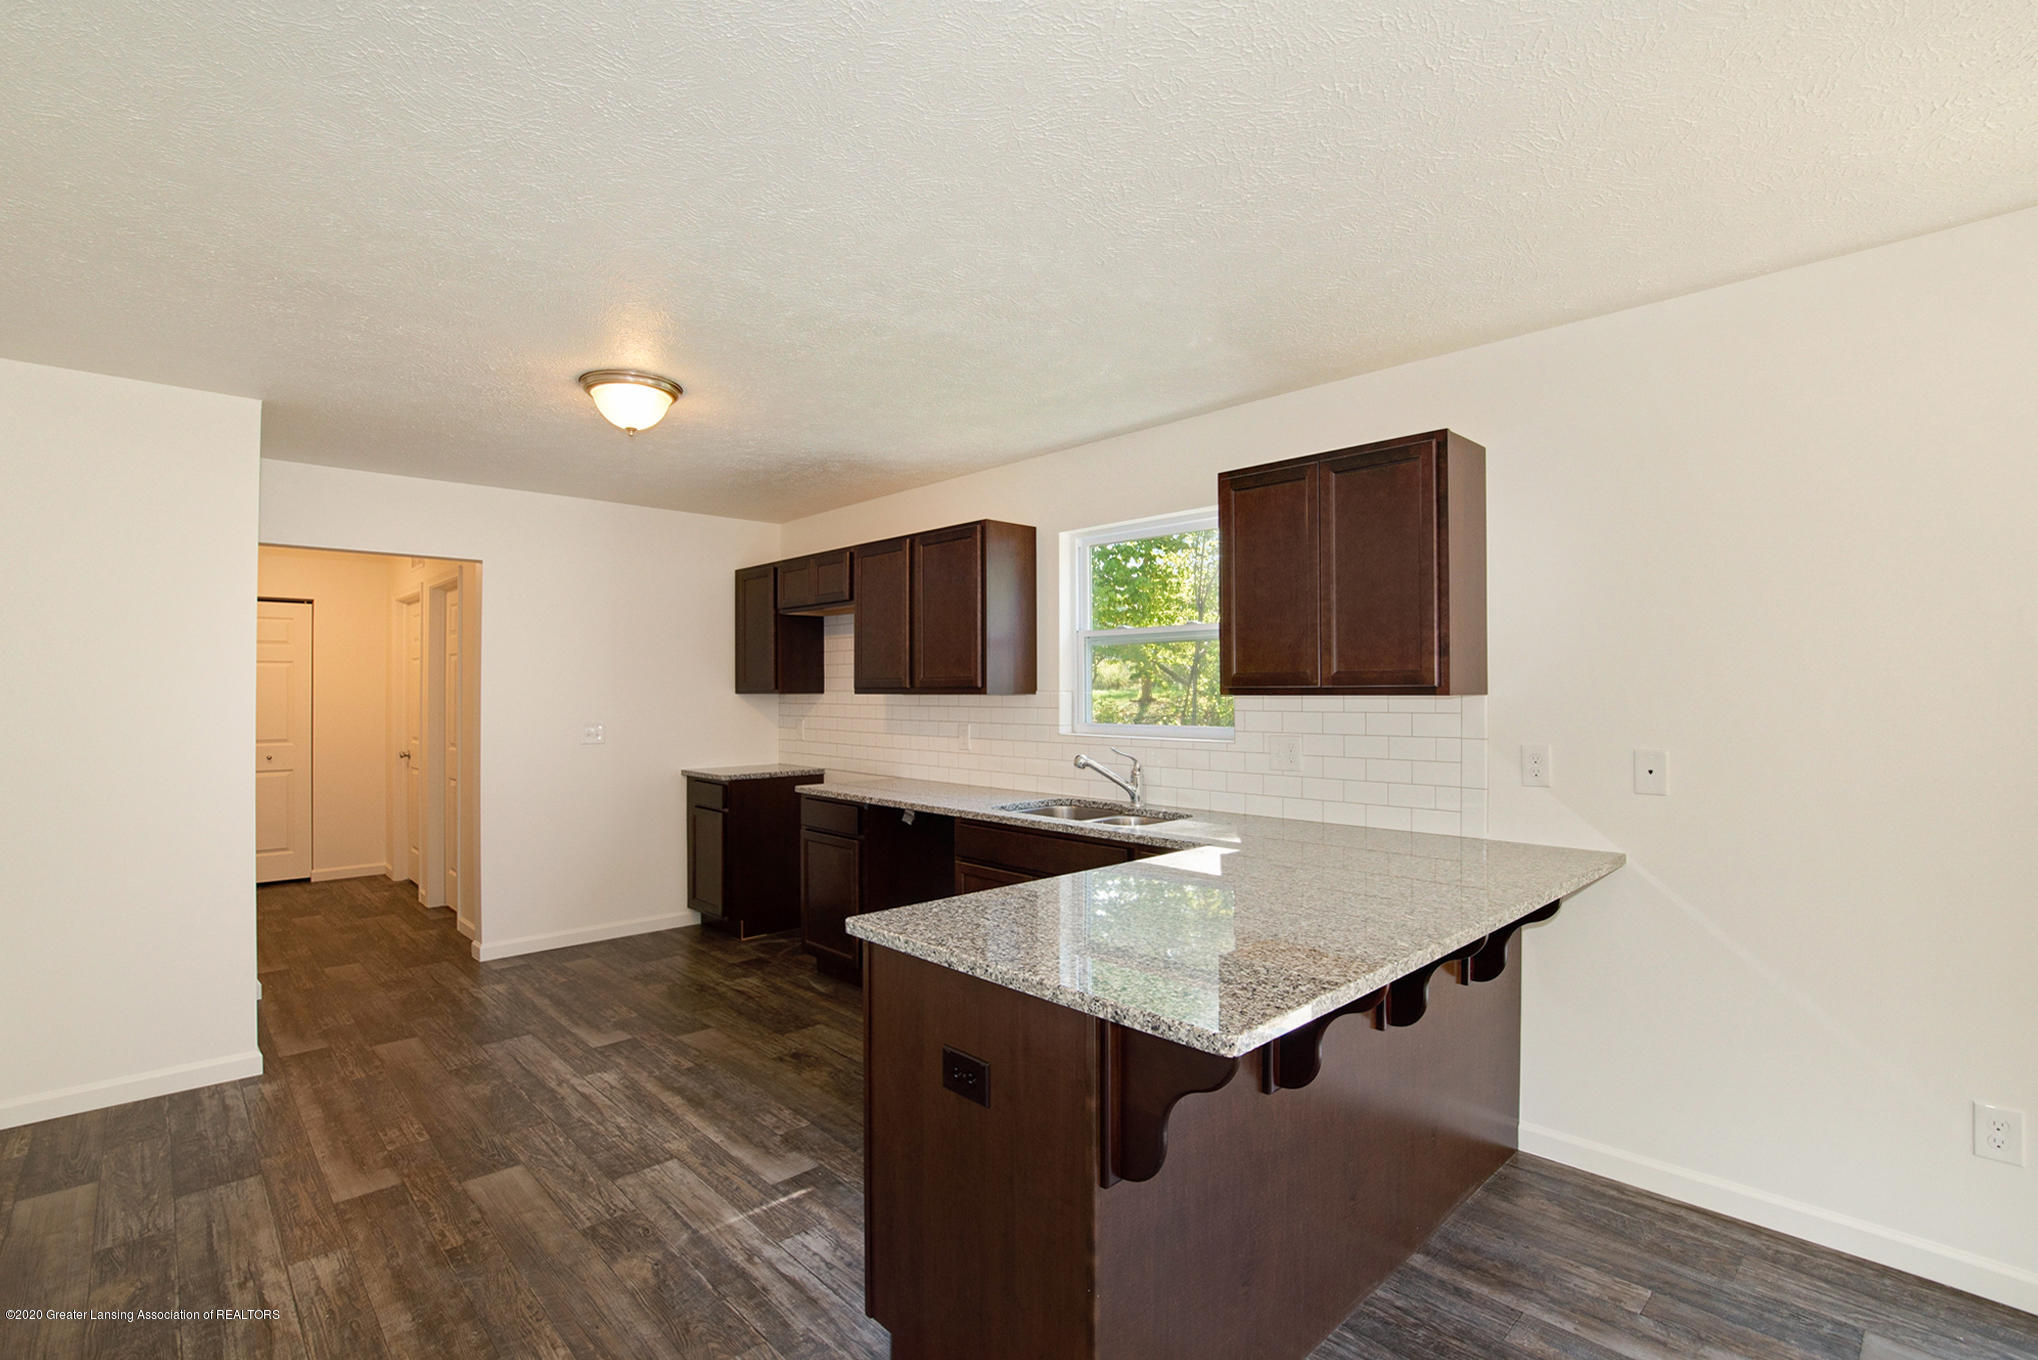 236 River Oaks Dr - OAK079-i1810-Kitchen3 - 7